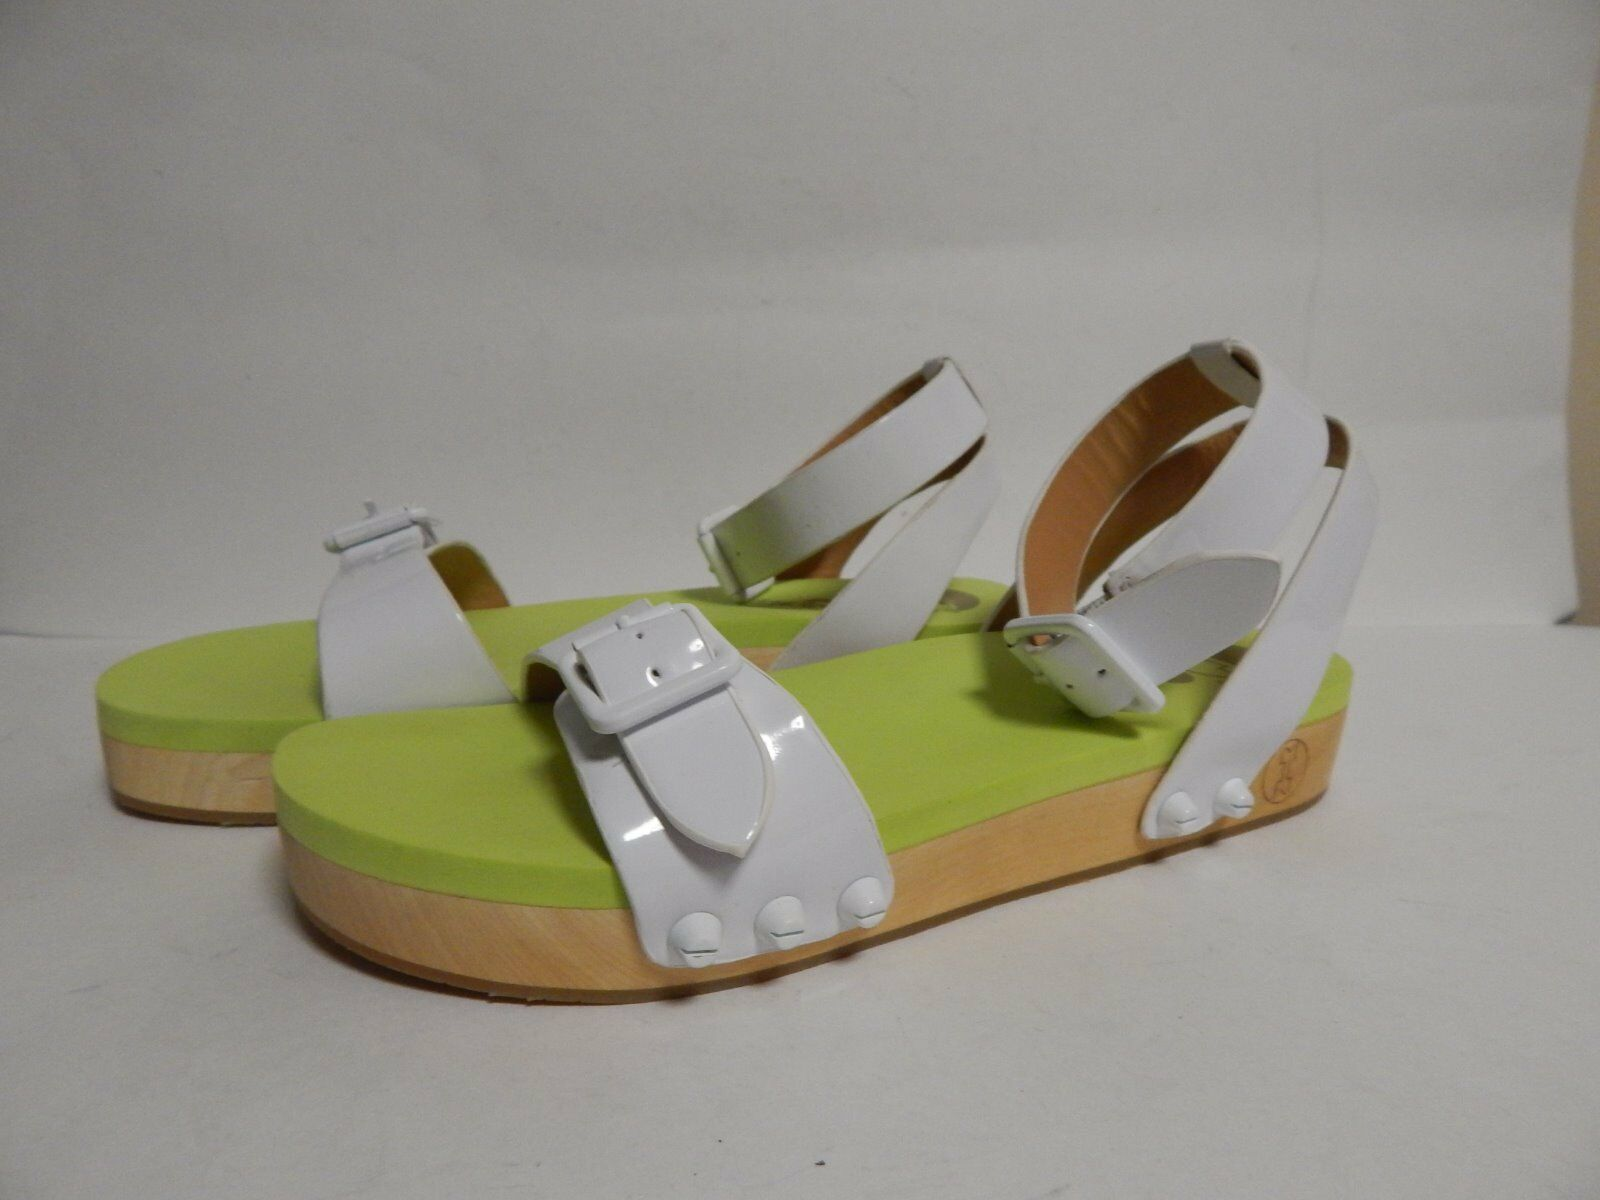 Flogg Noelle Sandal 7.5 M White patent Rubber  New with Box